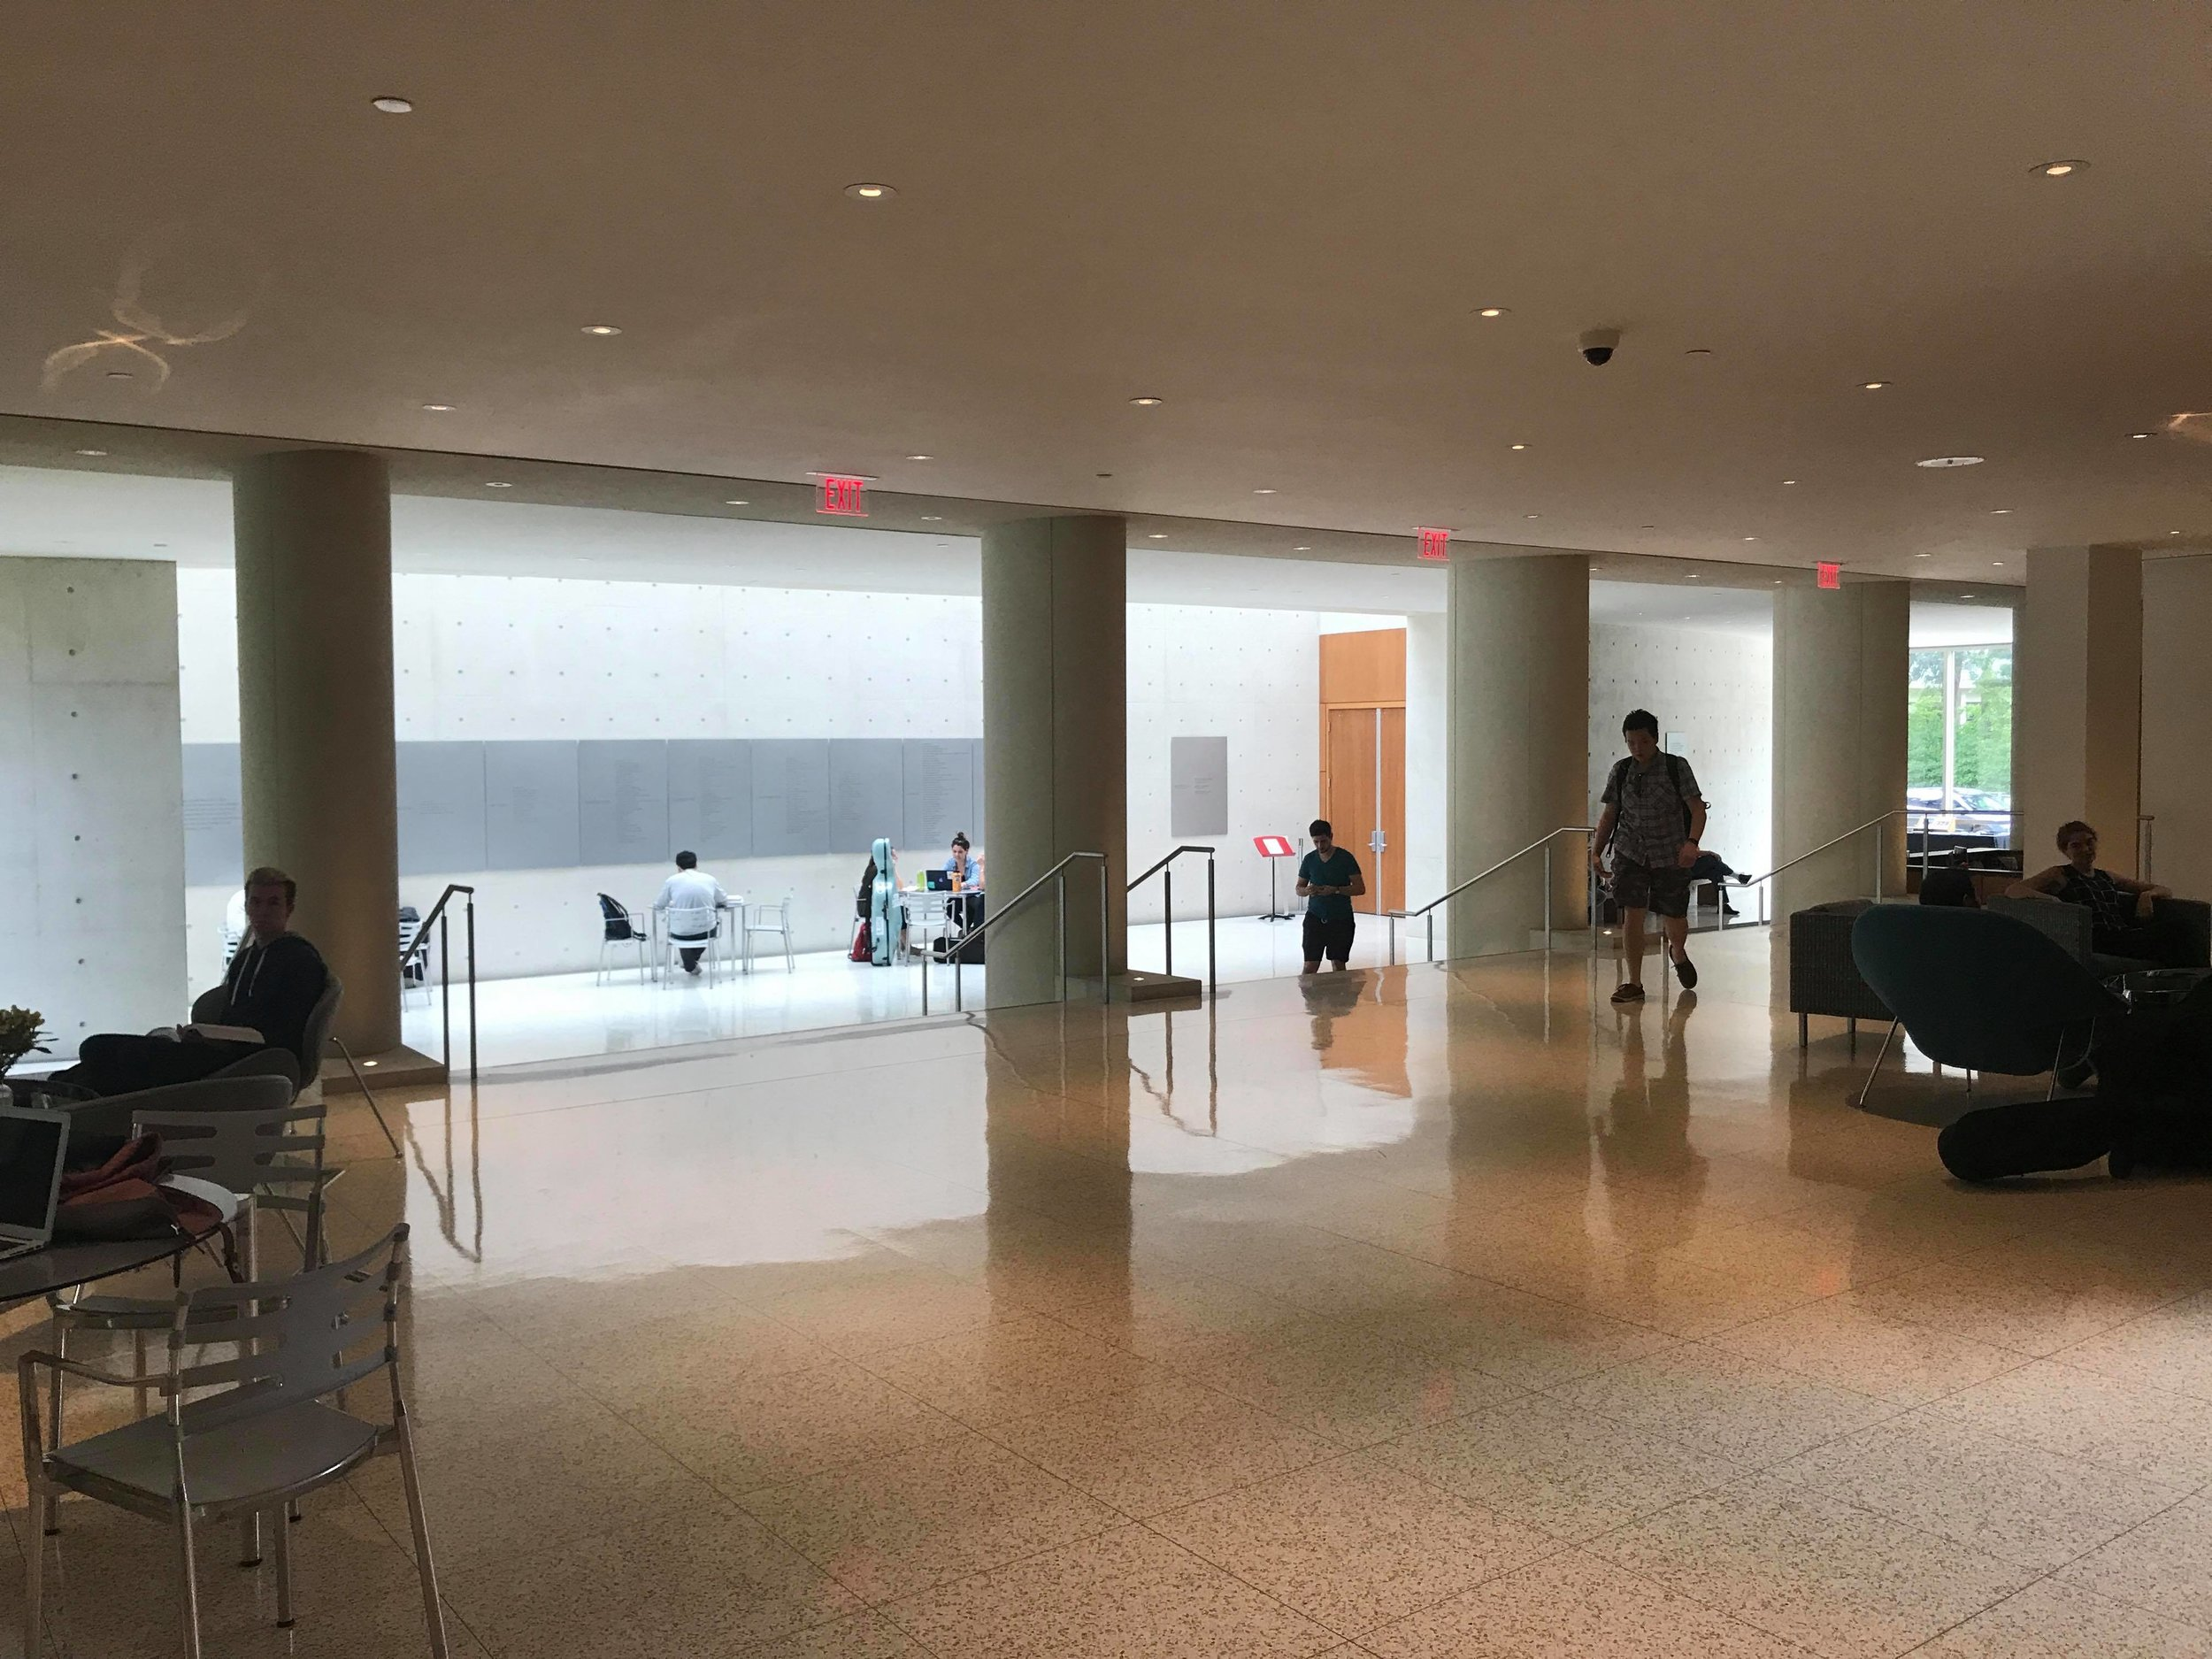 Pogue lobby; The double doors lead to Mixon Hall, where a majority of recitals and chamber music concerts take place. The elongated metal fixture on the wall contains many of the donors' names in which the Institute is indebted to.